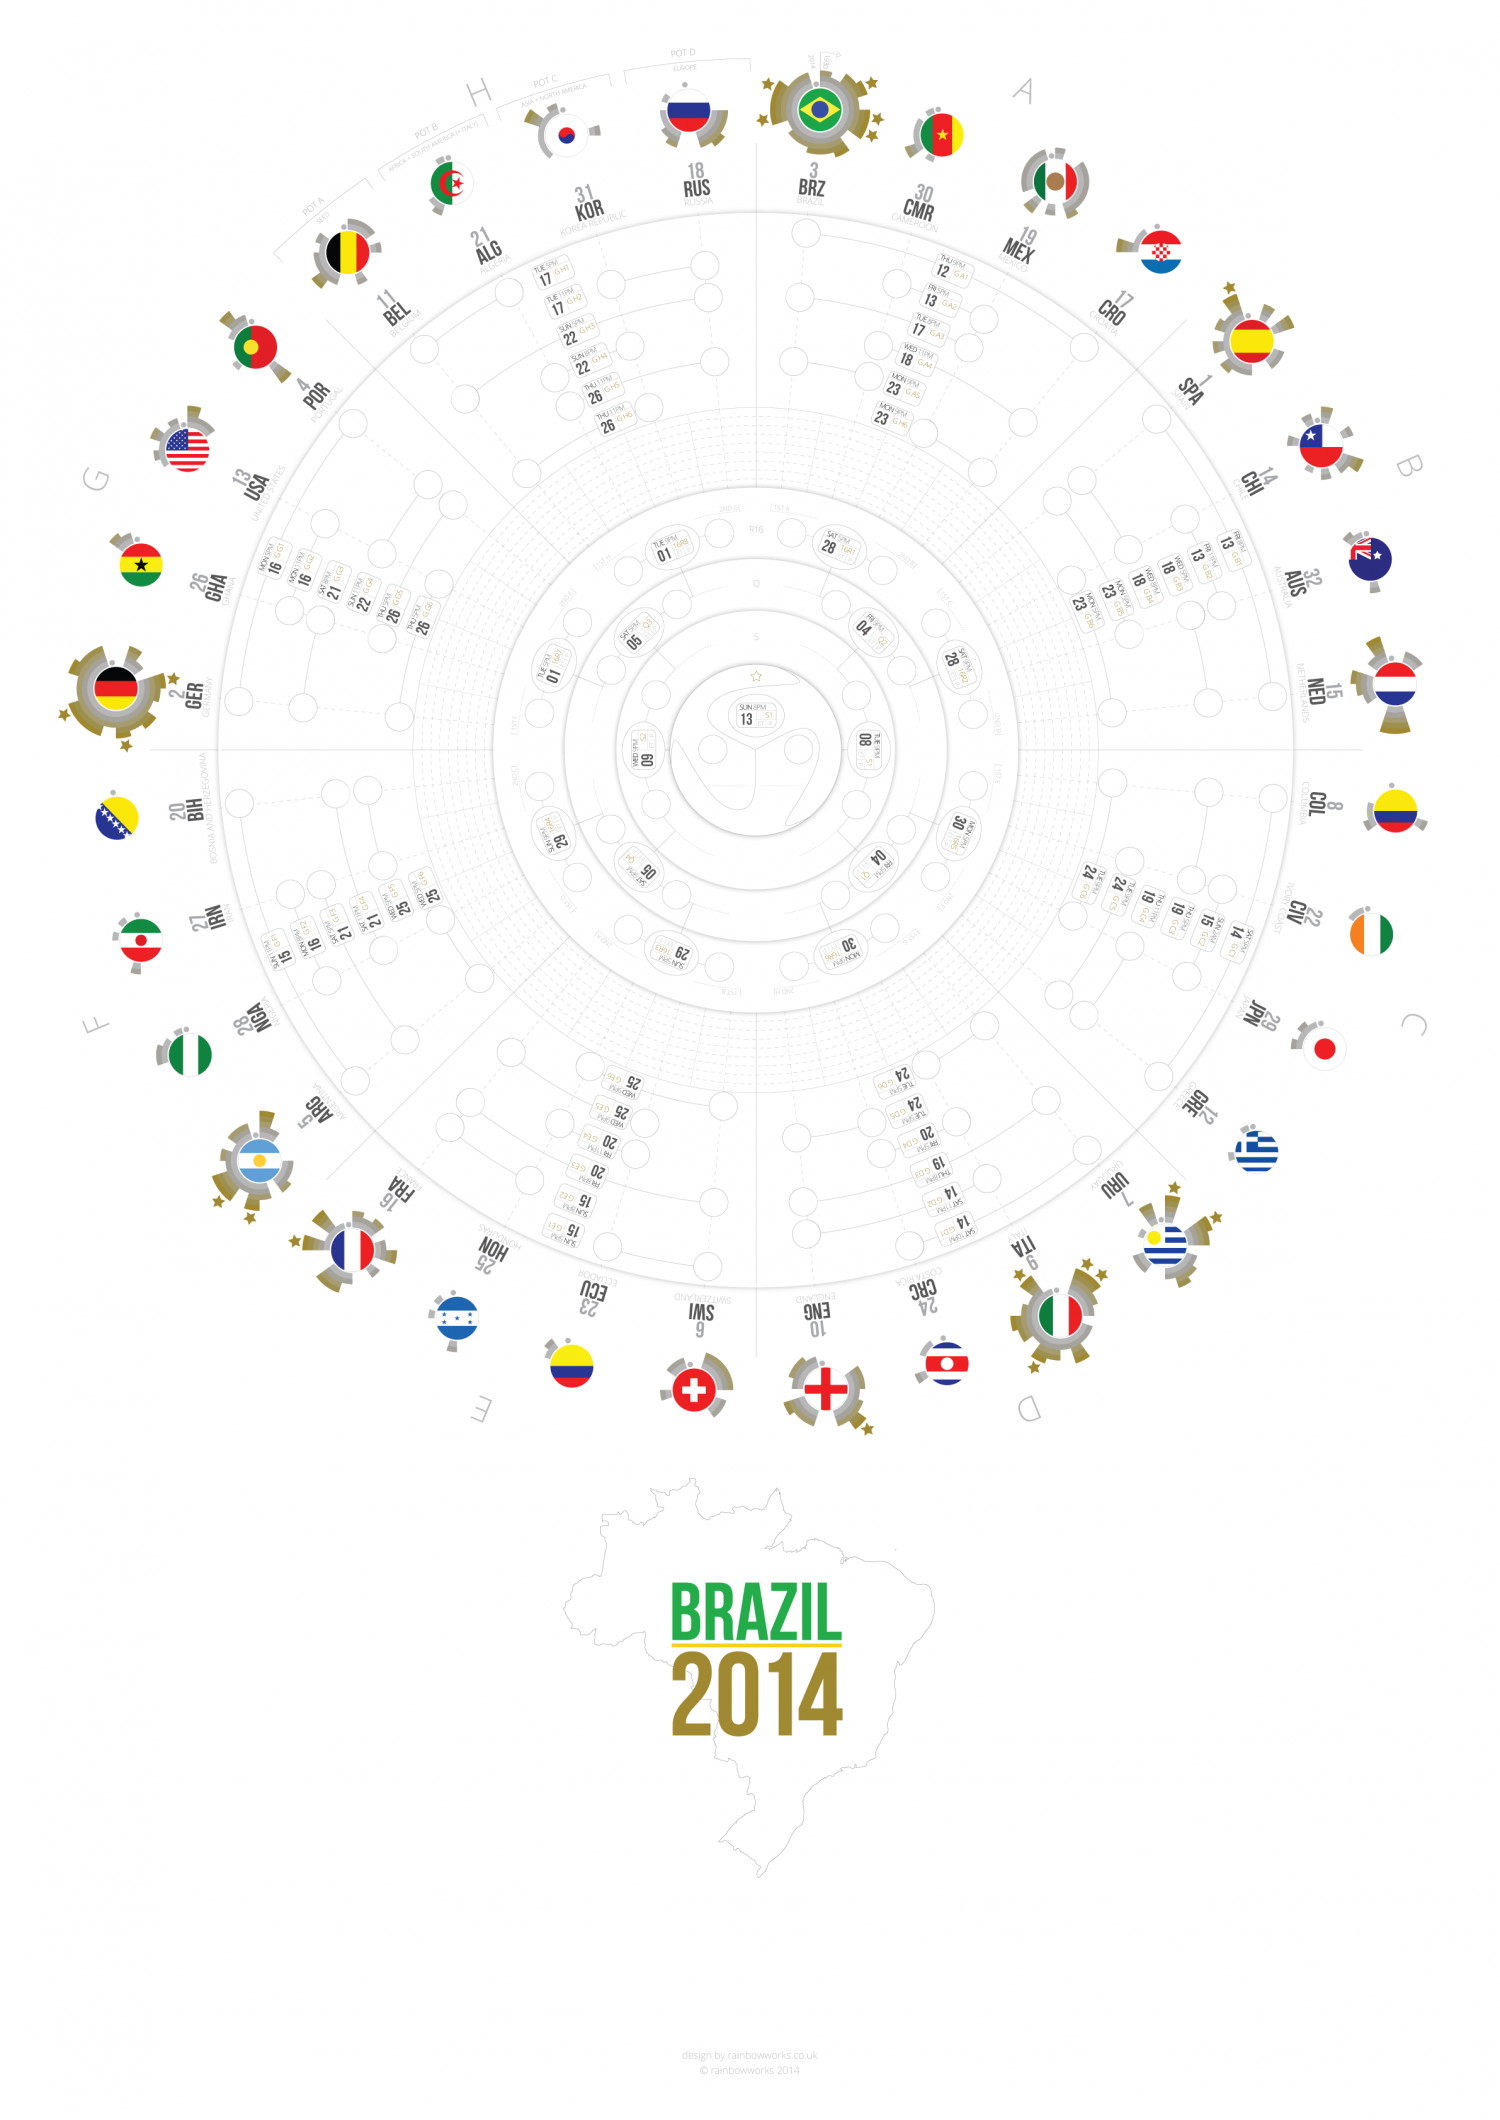 World Cup Wall Chart - Brazil 2014 Infographic